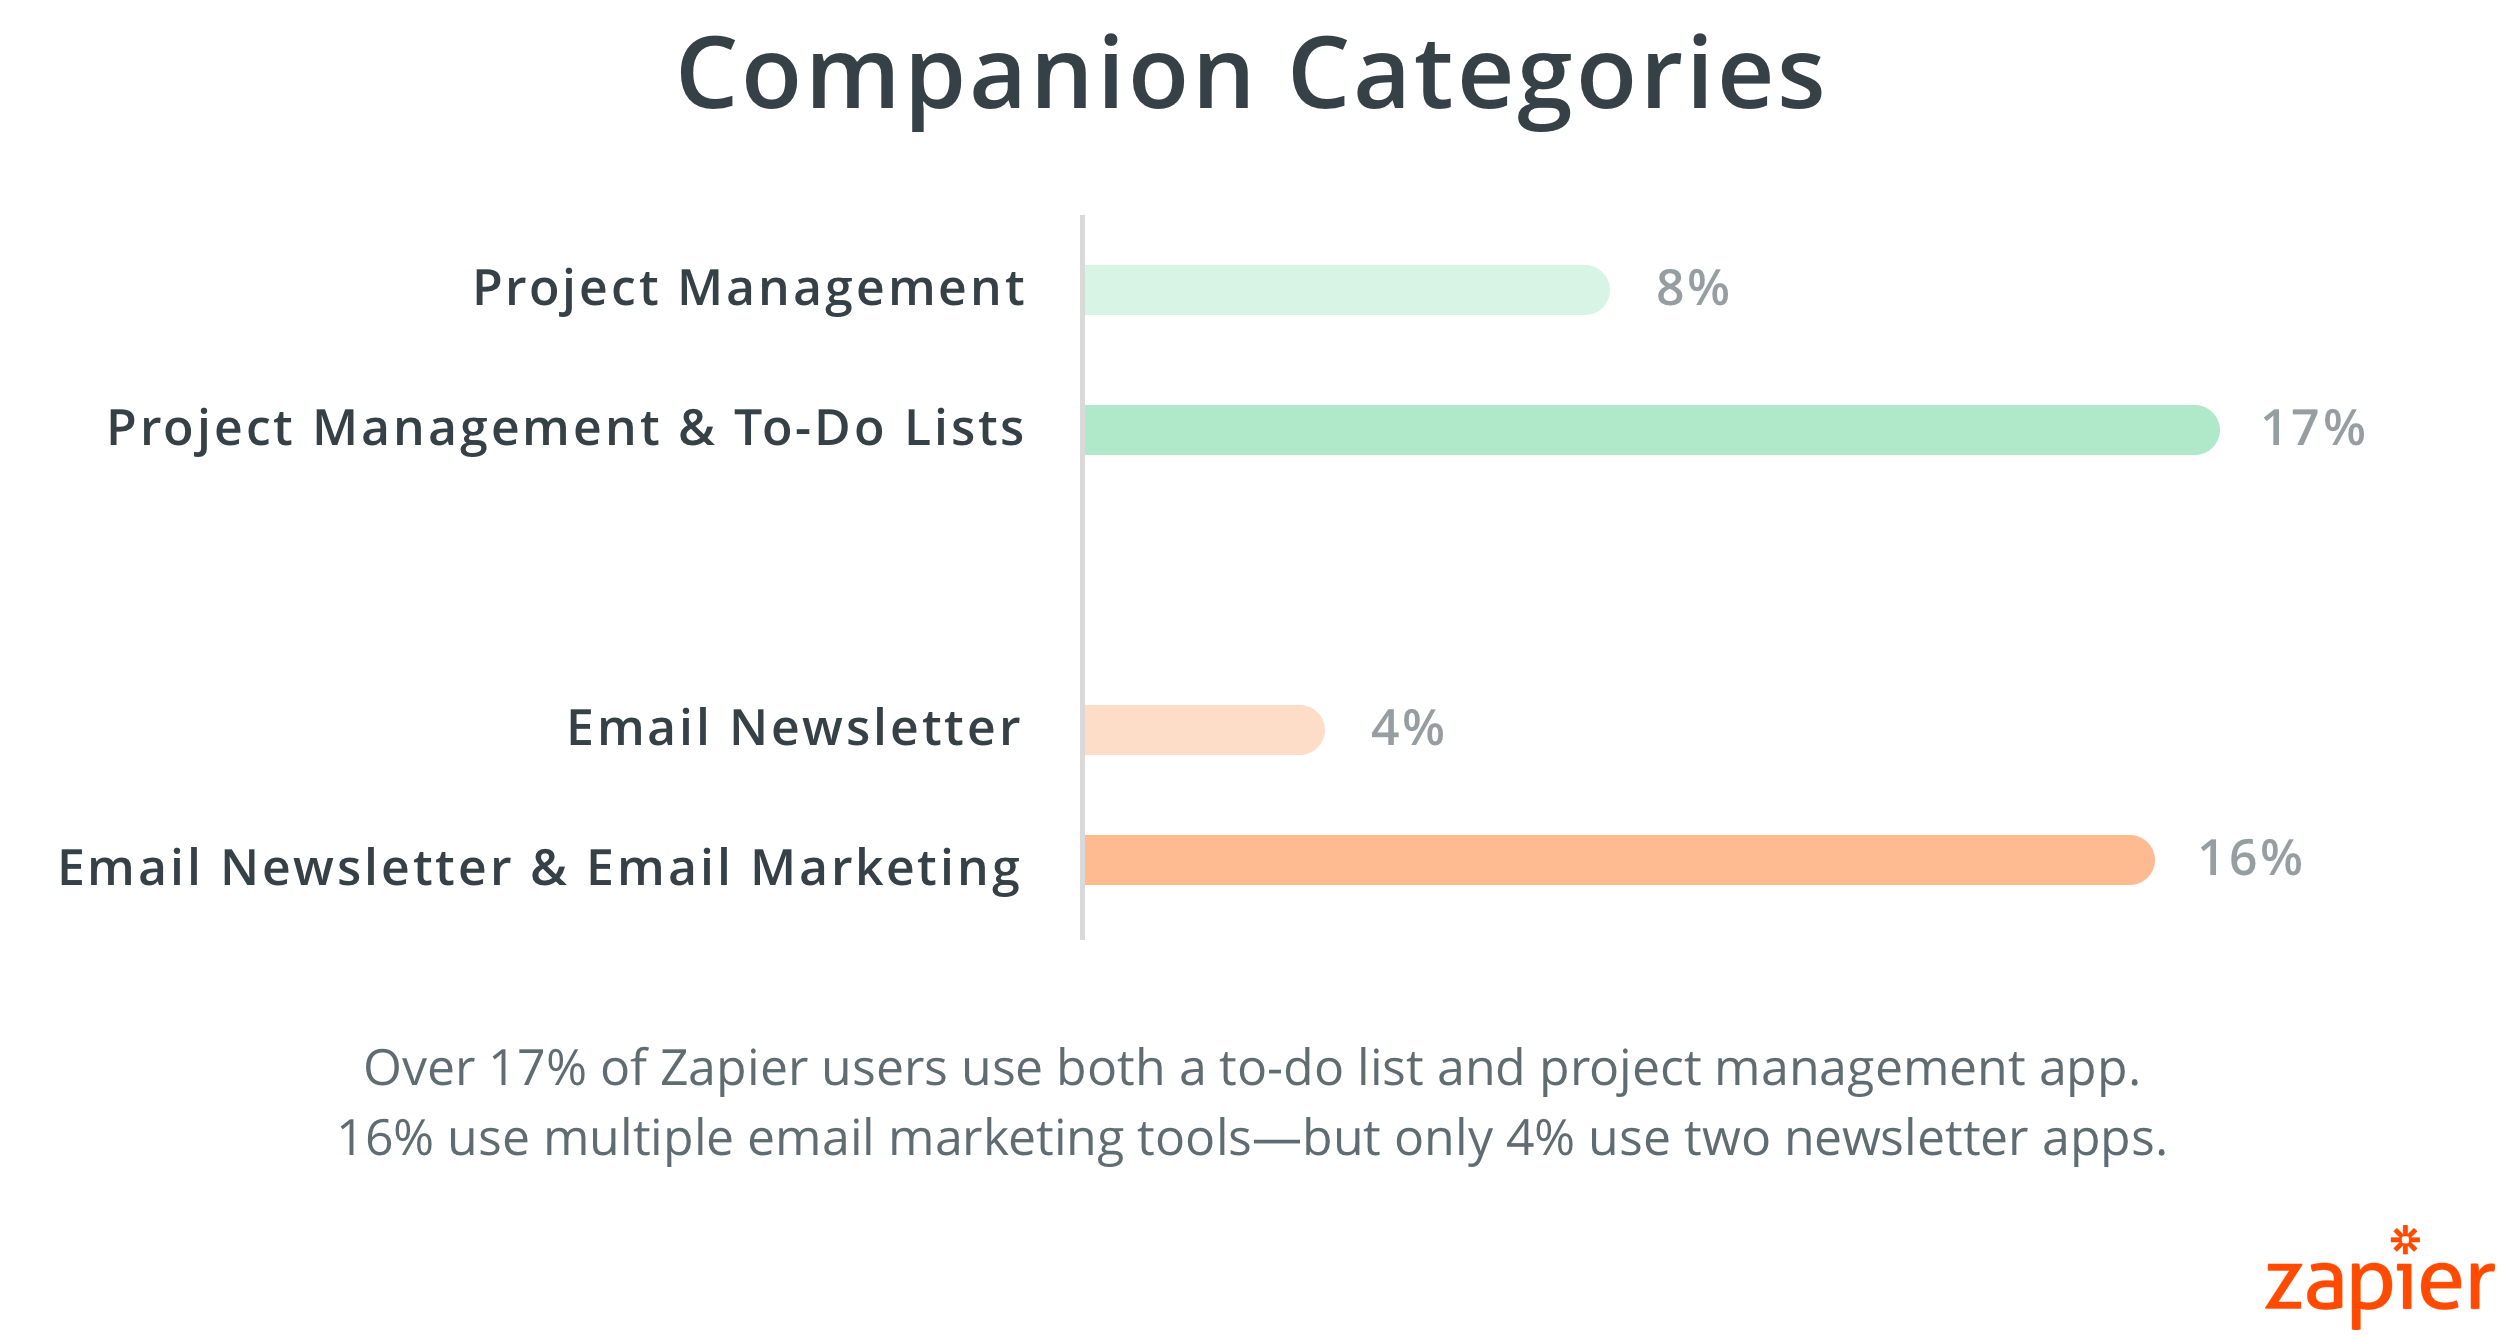 Zapier user are more likely to use both a project and to-do list app than 2 project management apps